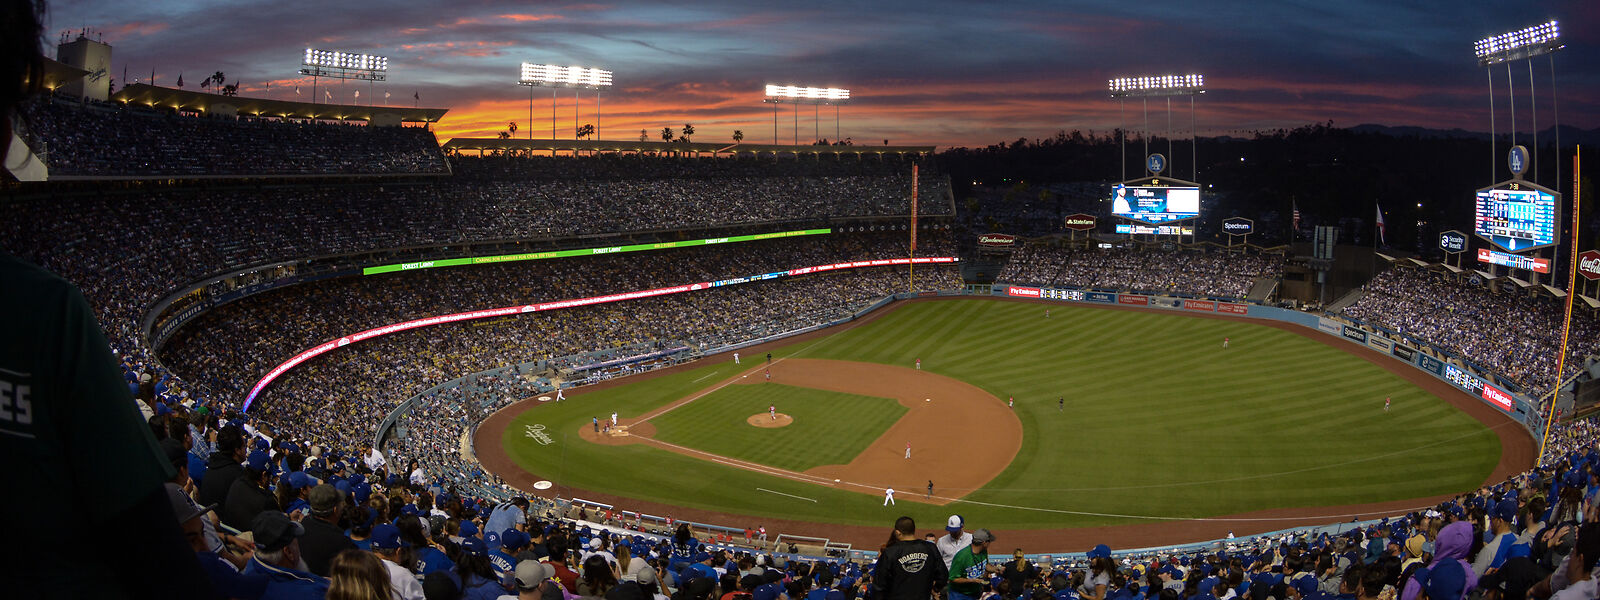 St. Louis Cardinals at Los Angeles Dodgers Tickets (Chase Utley Bobblehead)